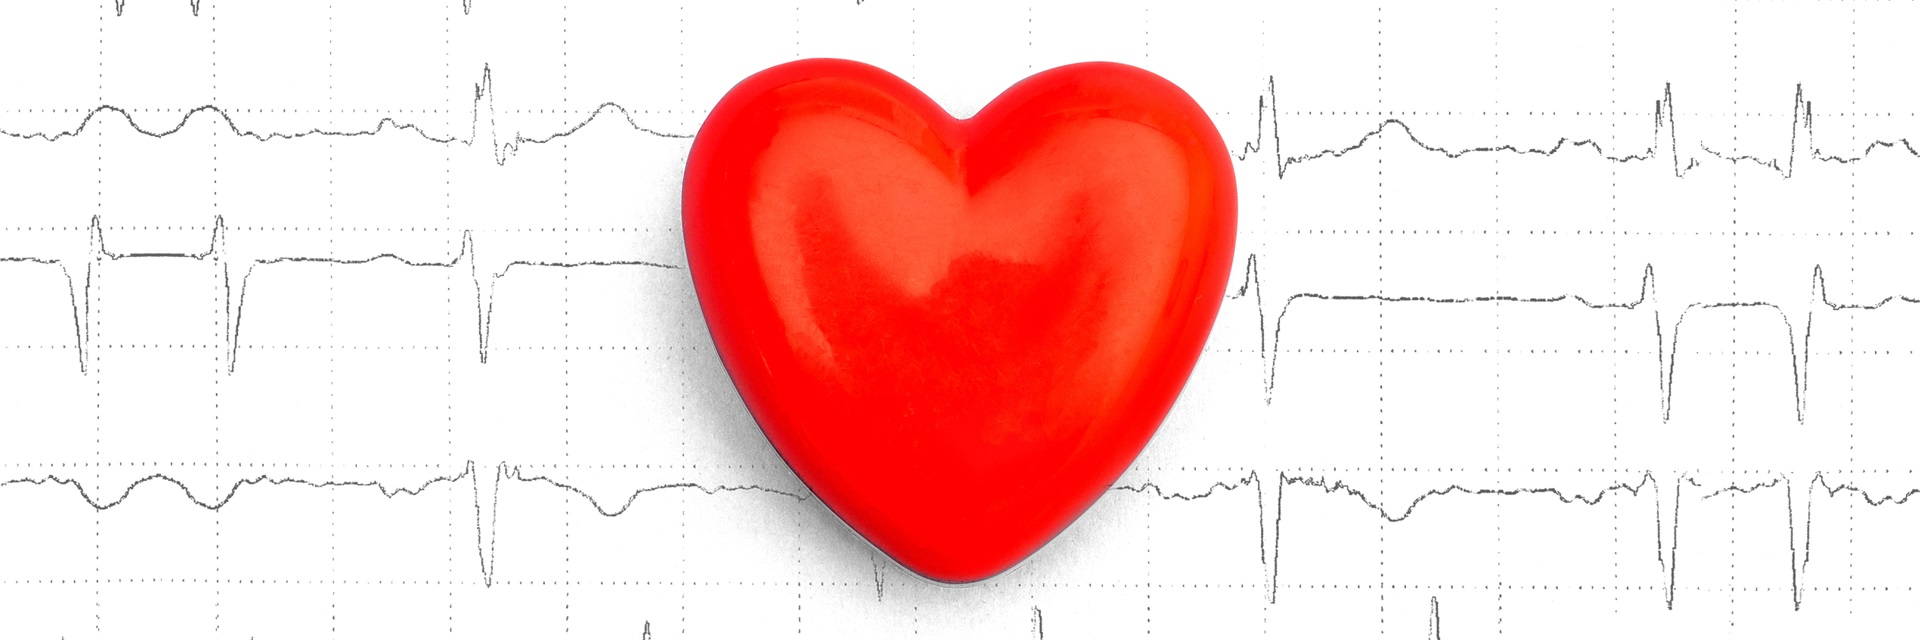 What is an average heart rate?